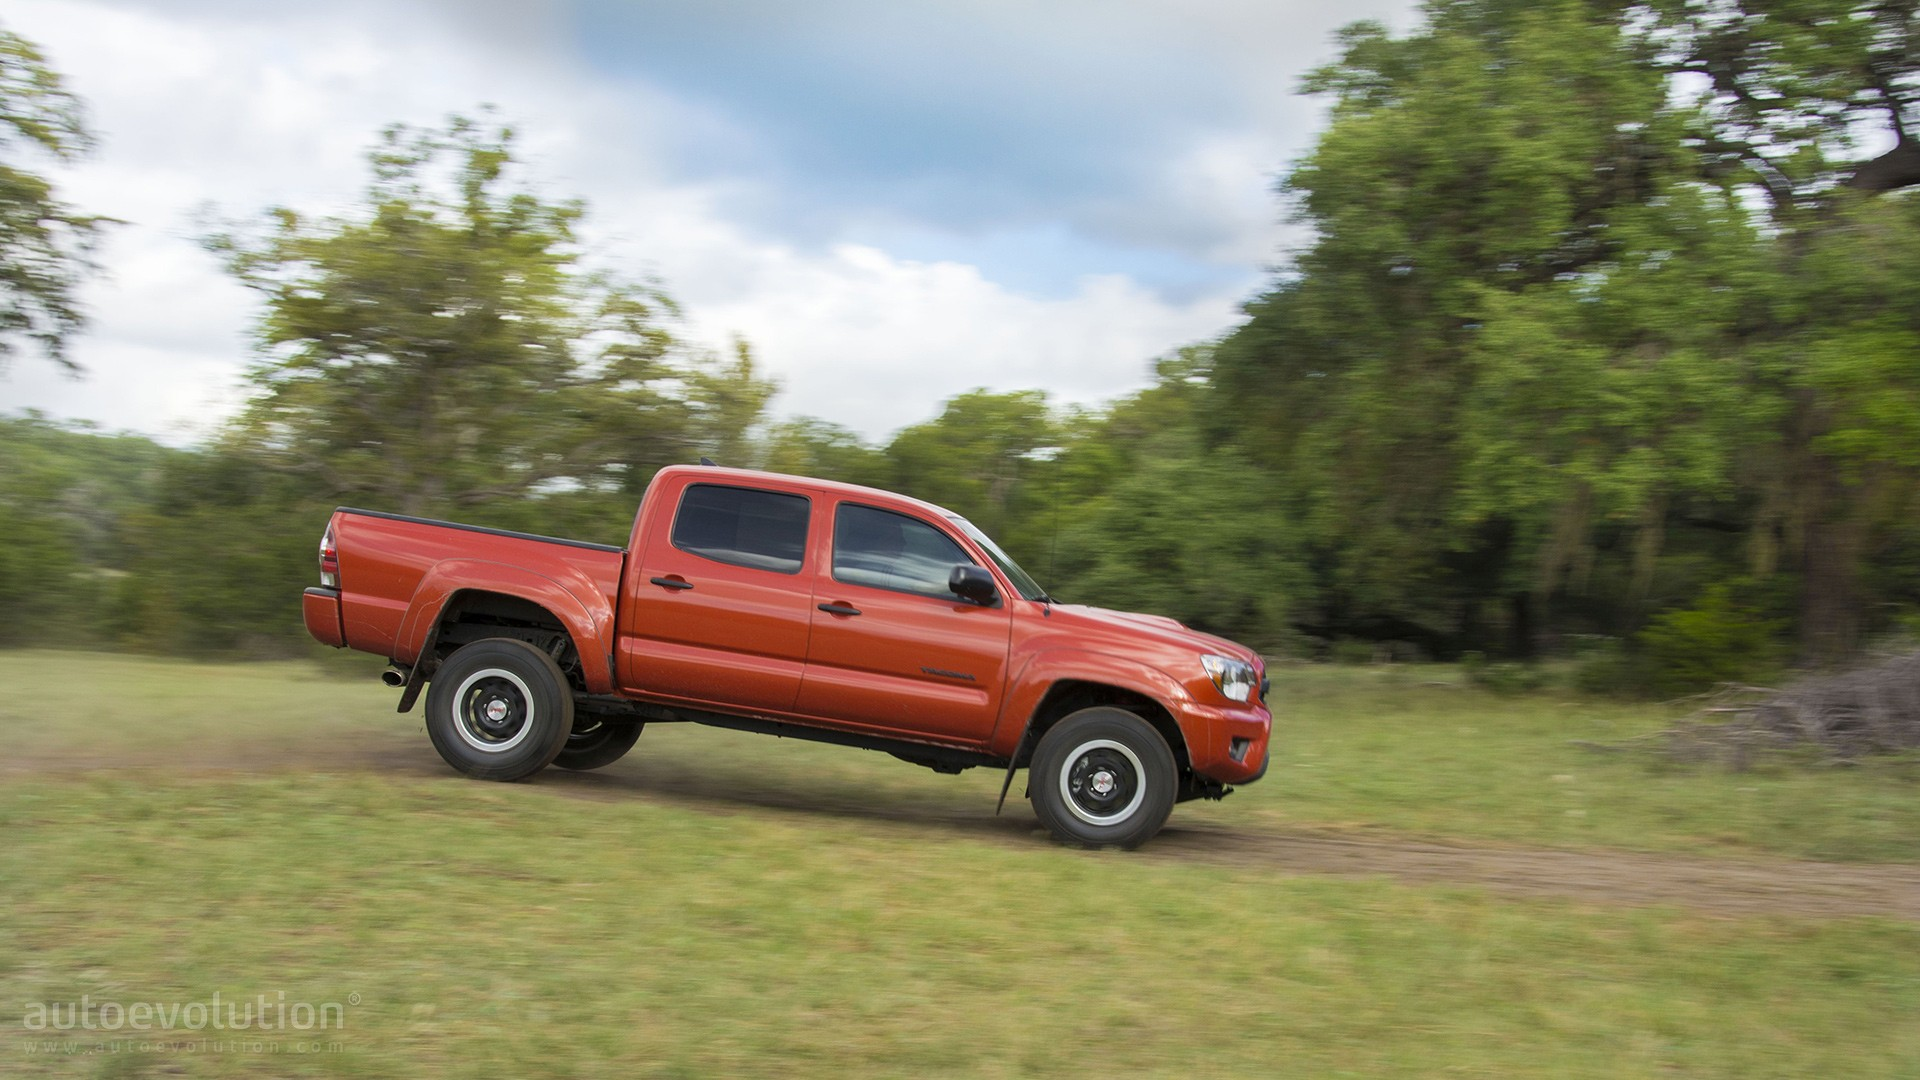 news pro tacoma photos raptor aiming wild goes svt autoevolution toyota f when tested trd at the mighty